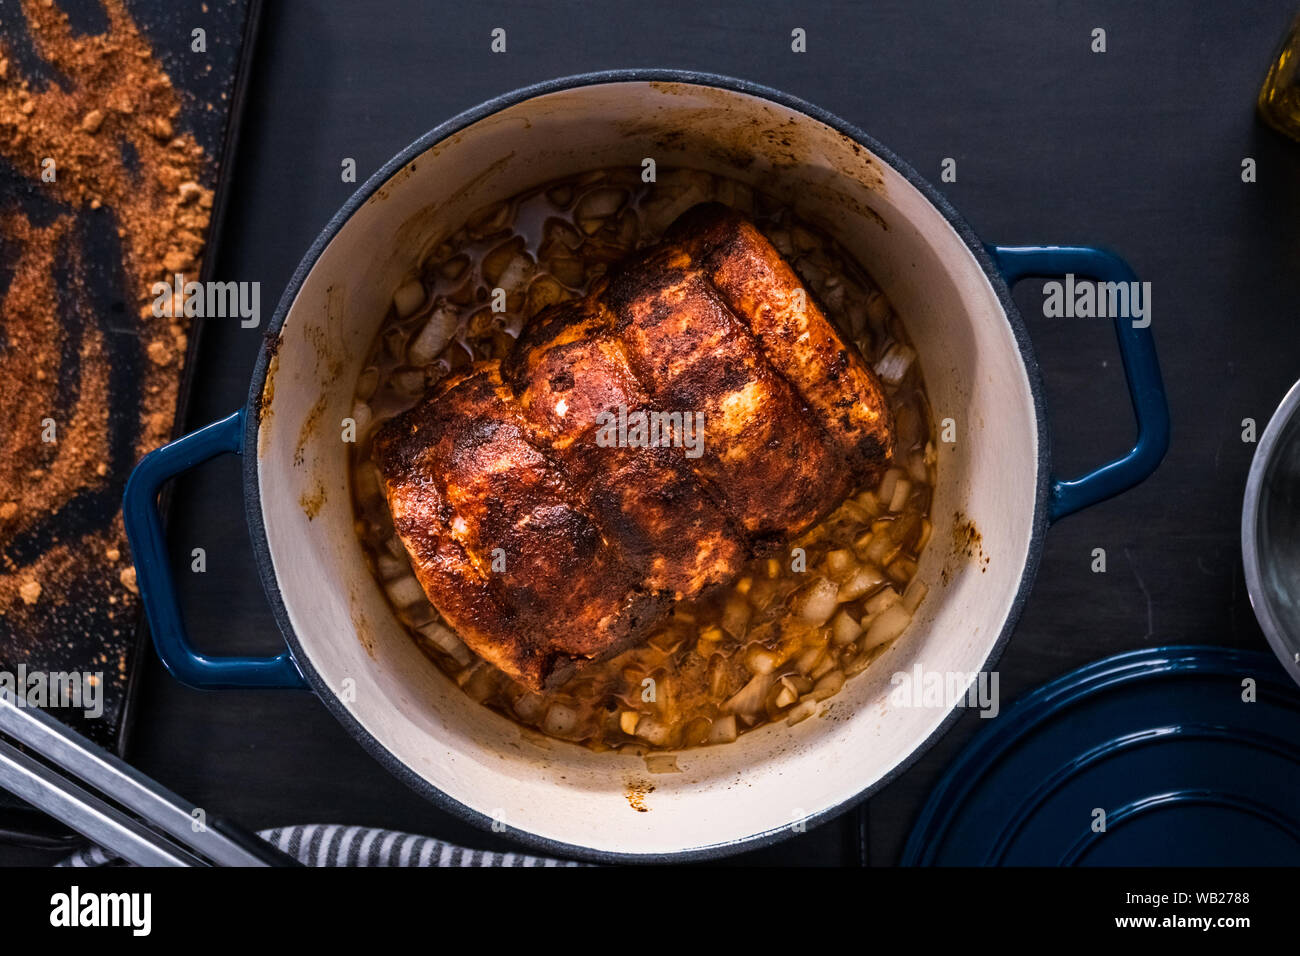 Flat Lay Cooking Boneless Pork Roast In Enameled Cast Iron Covered Dutch Oven Stock Photo Alamy